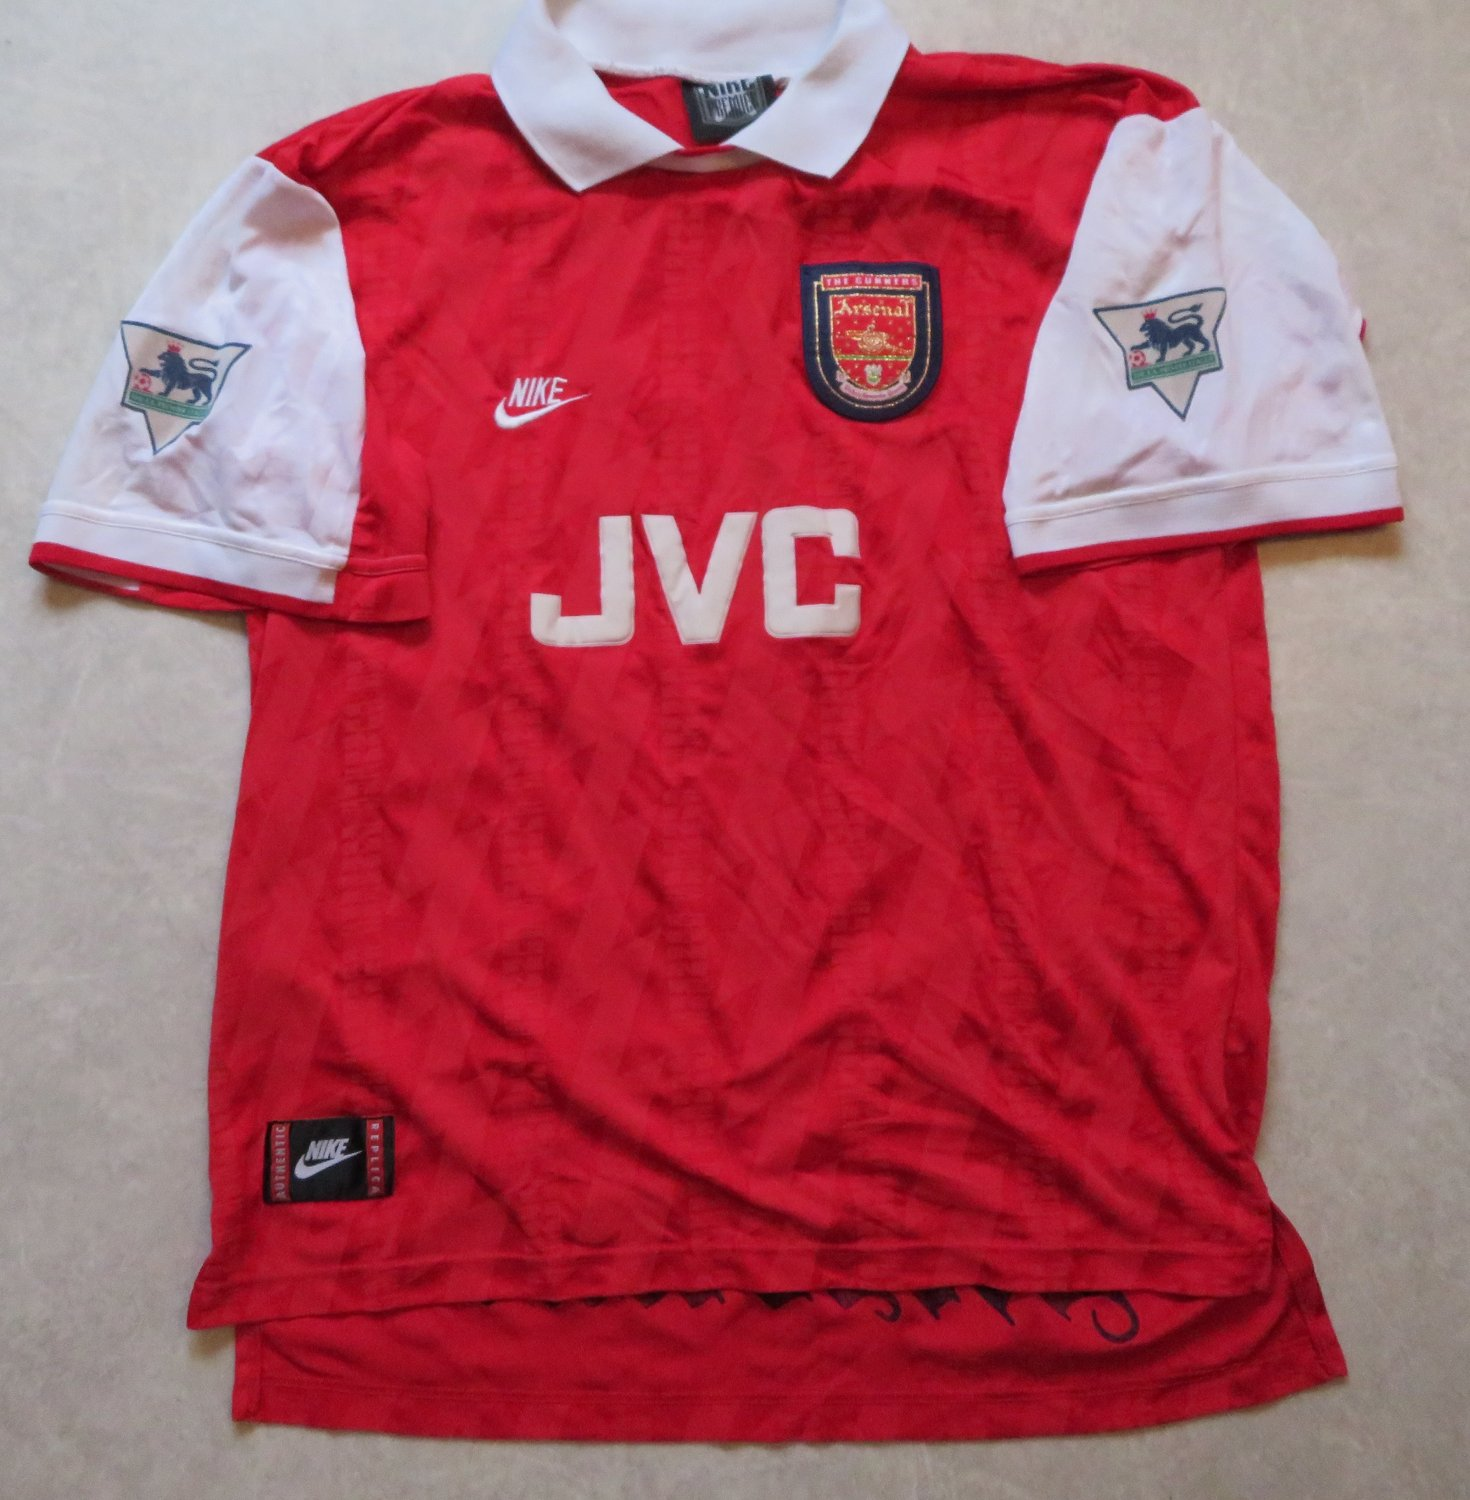 3db84a3e2 Arsenal Home maglia di calcio 1994 - 1996. Sponsored by JVC